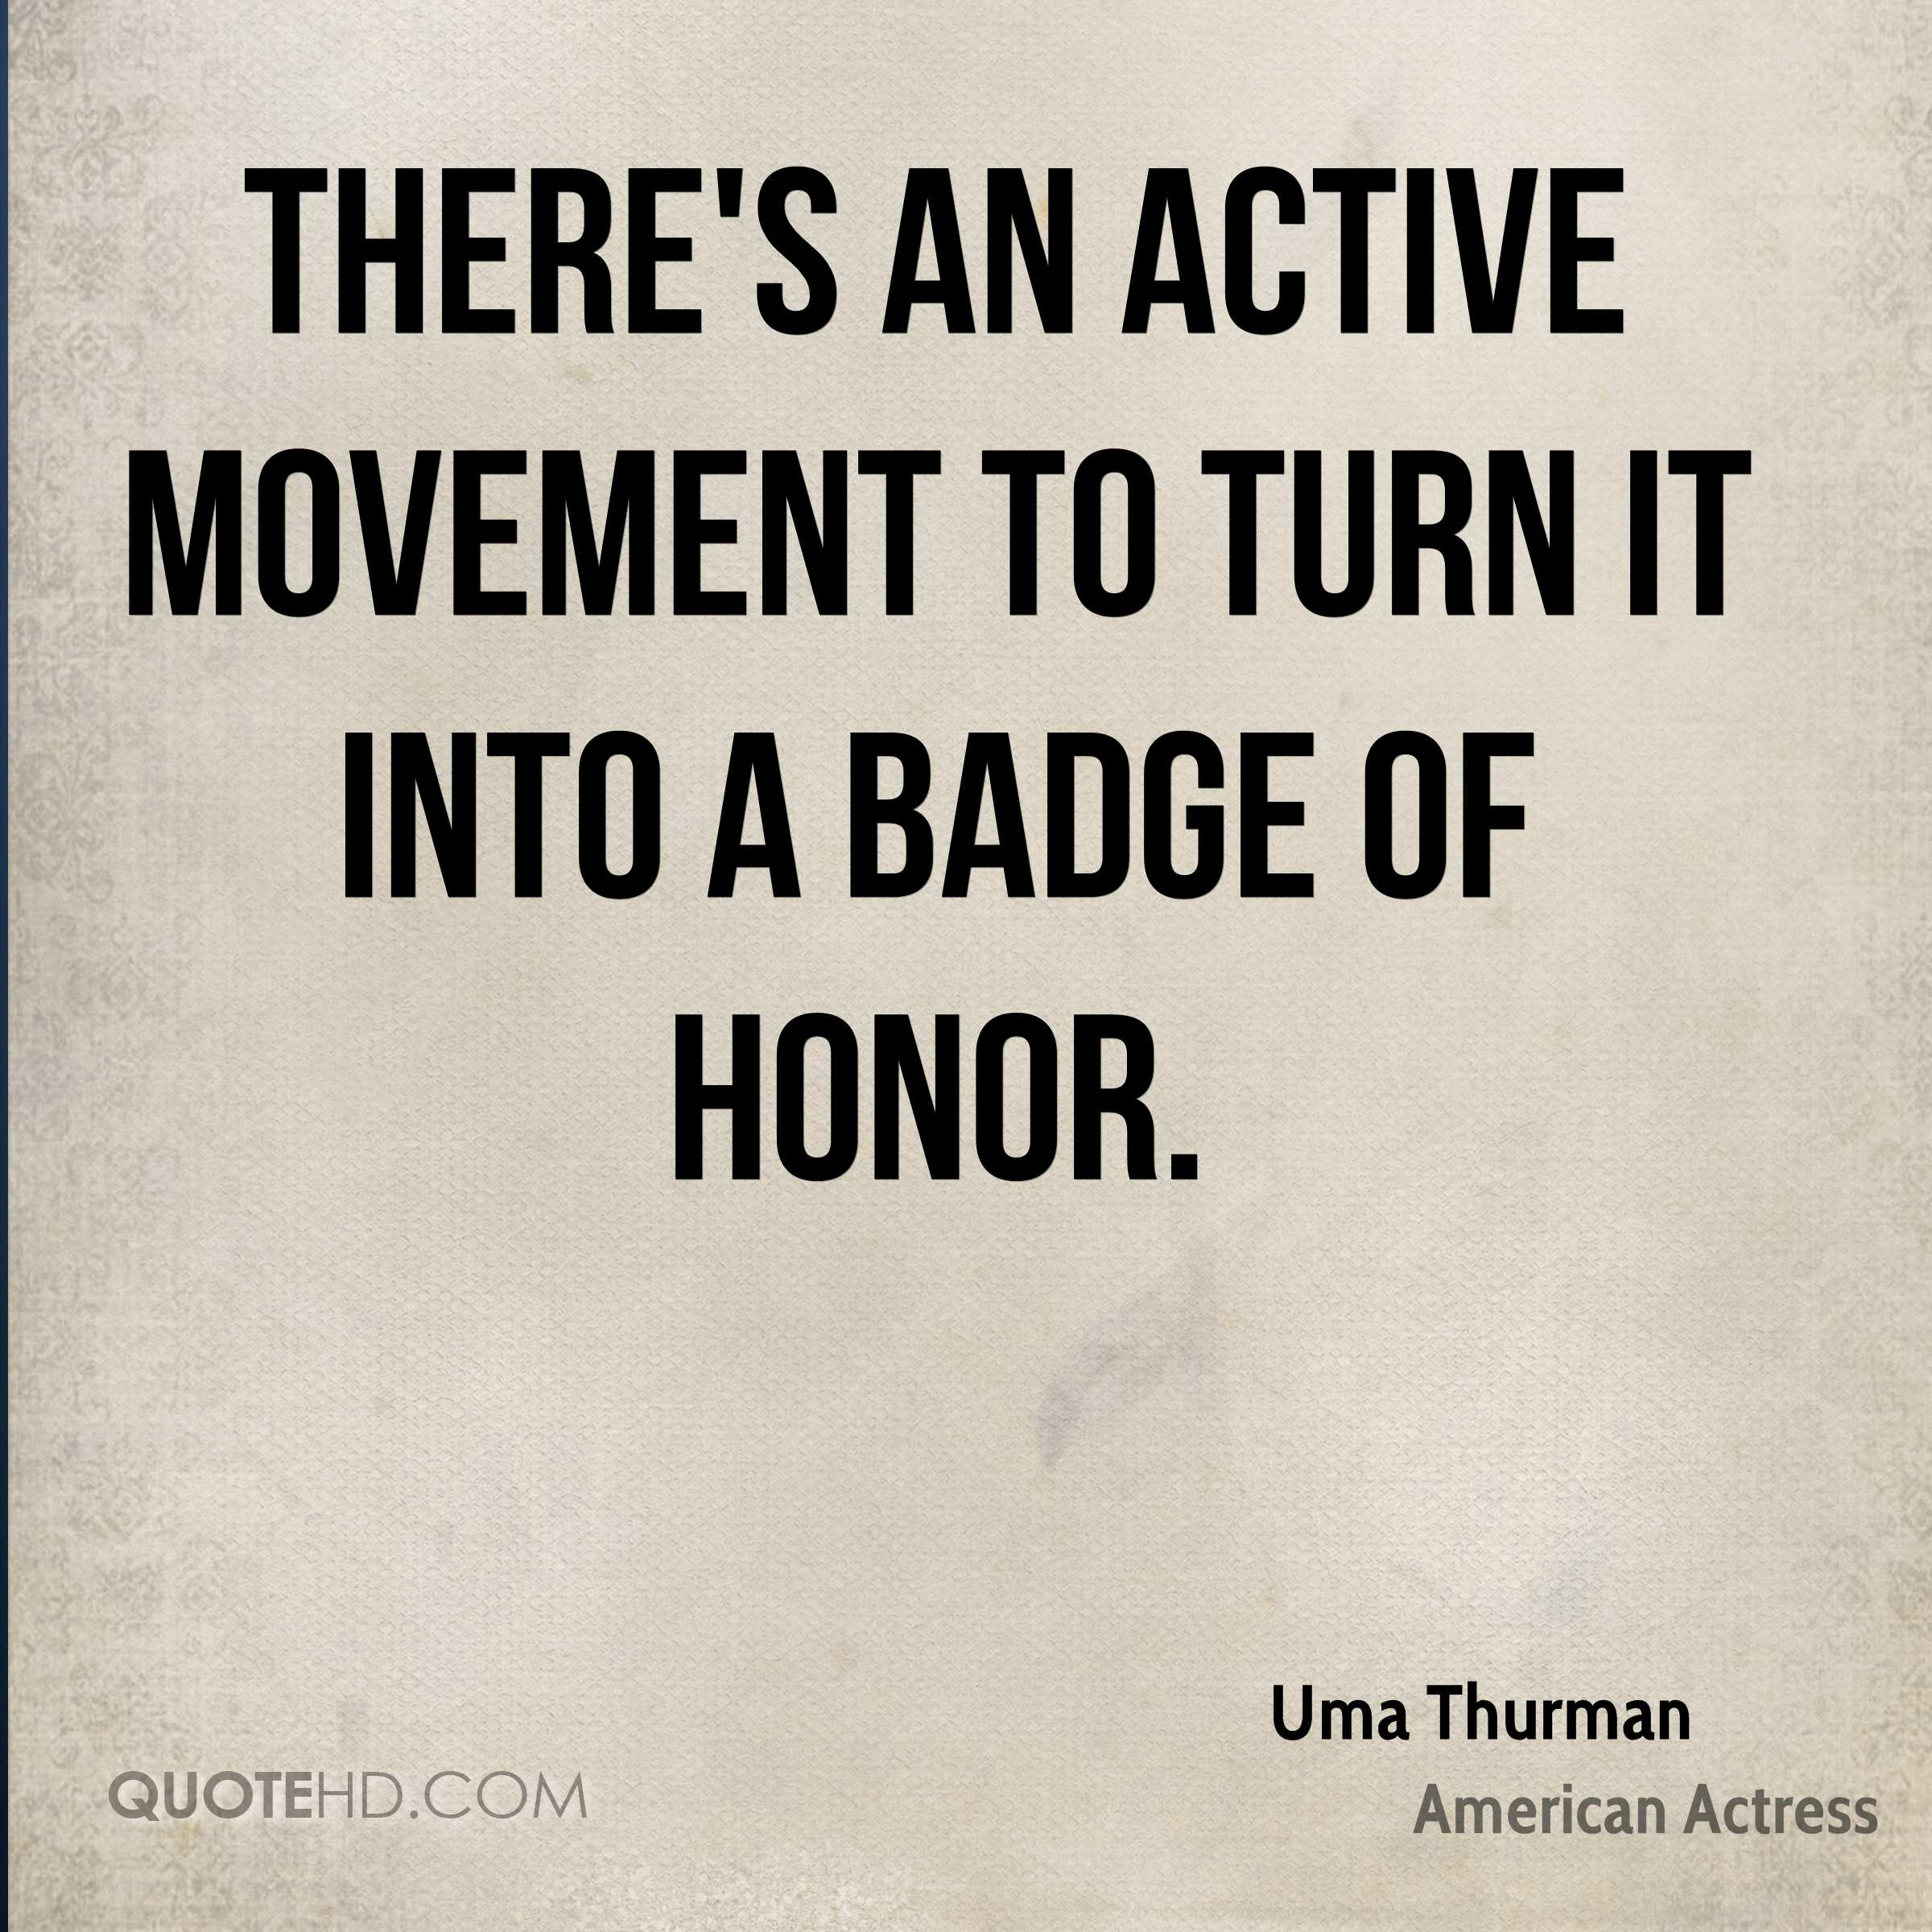 There's an active movement to turn it into a badge of honor.